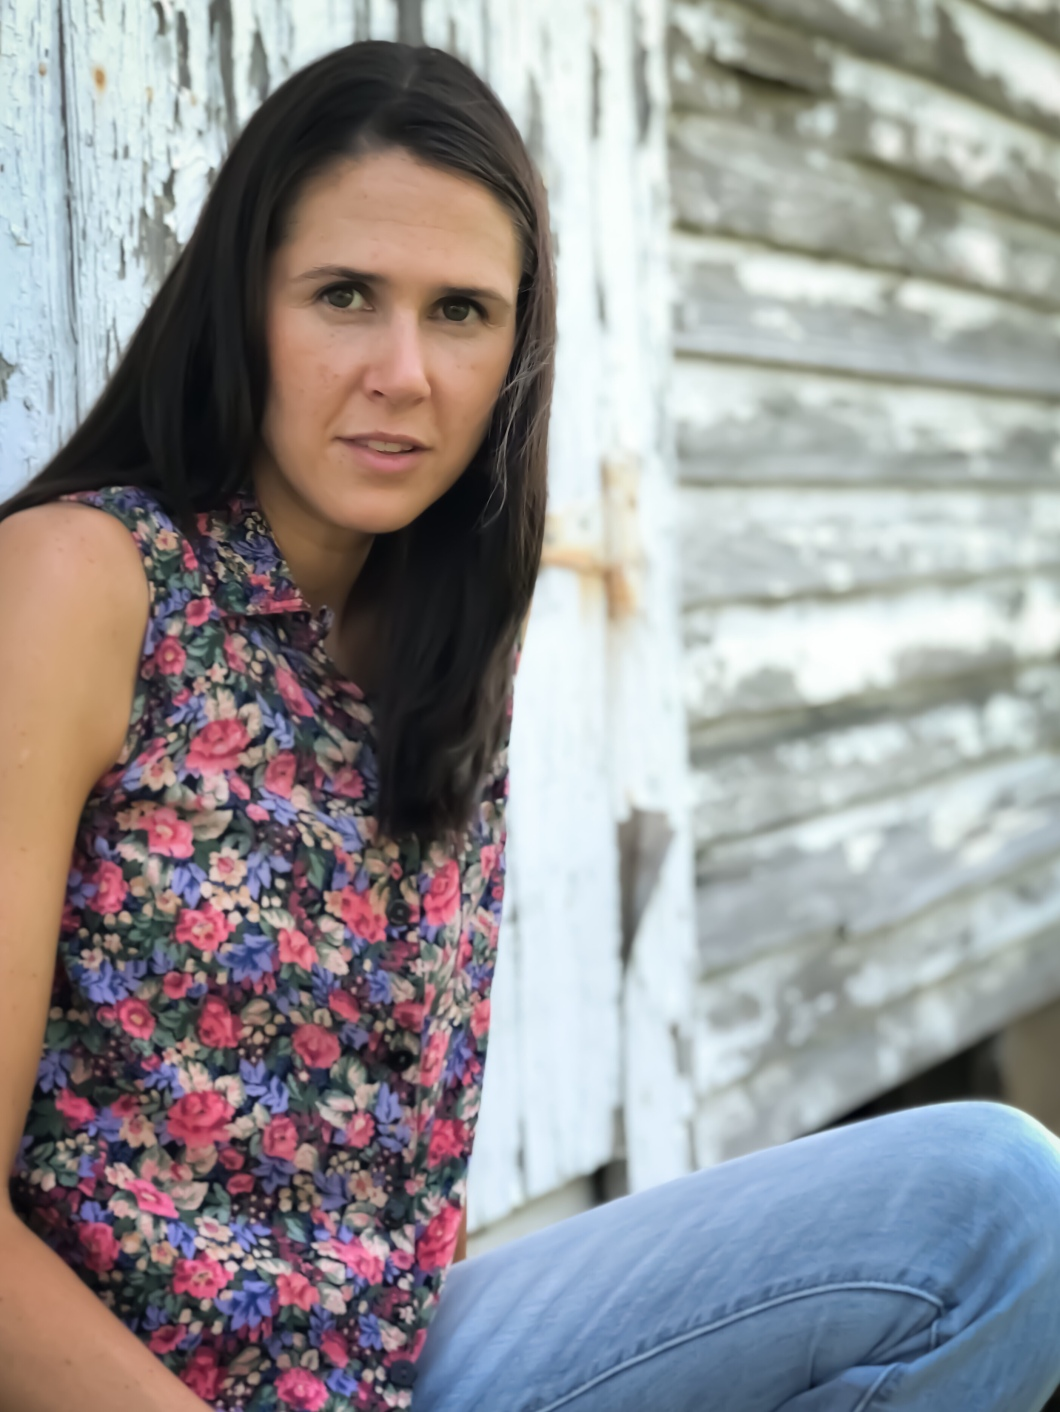 Amy Barnard Photoshoot for The Block Vintage - 1990's Floral Button Front Sleeveless Top Shirt